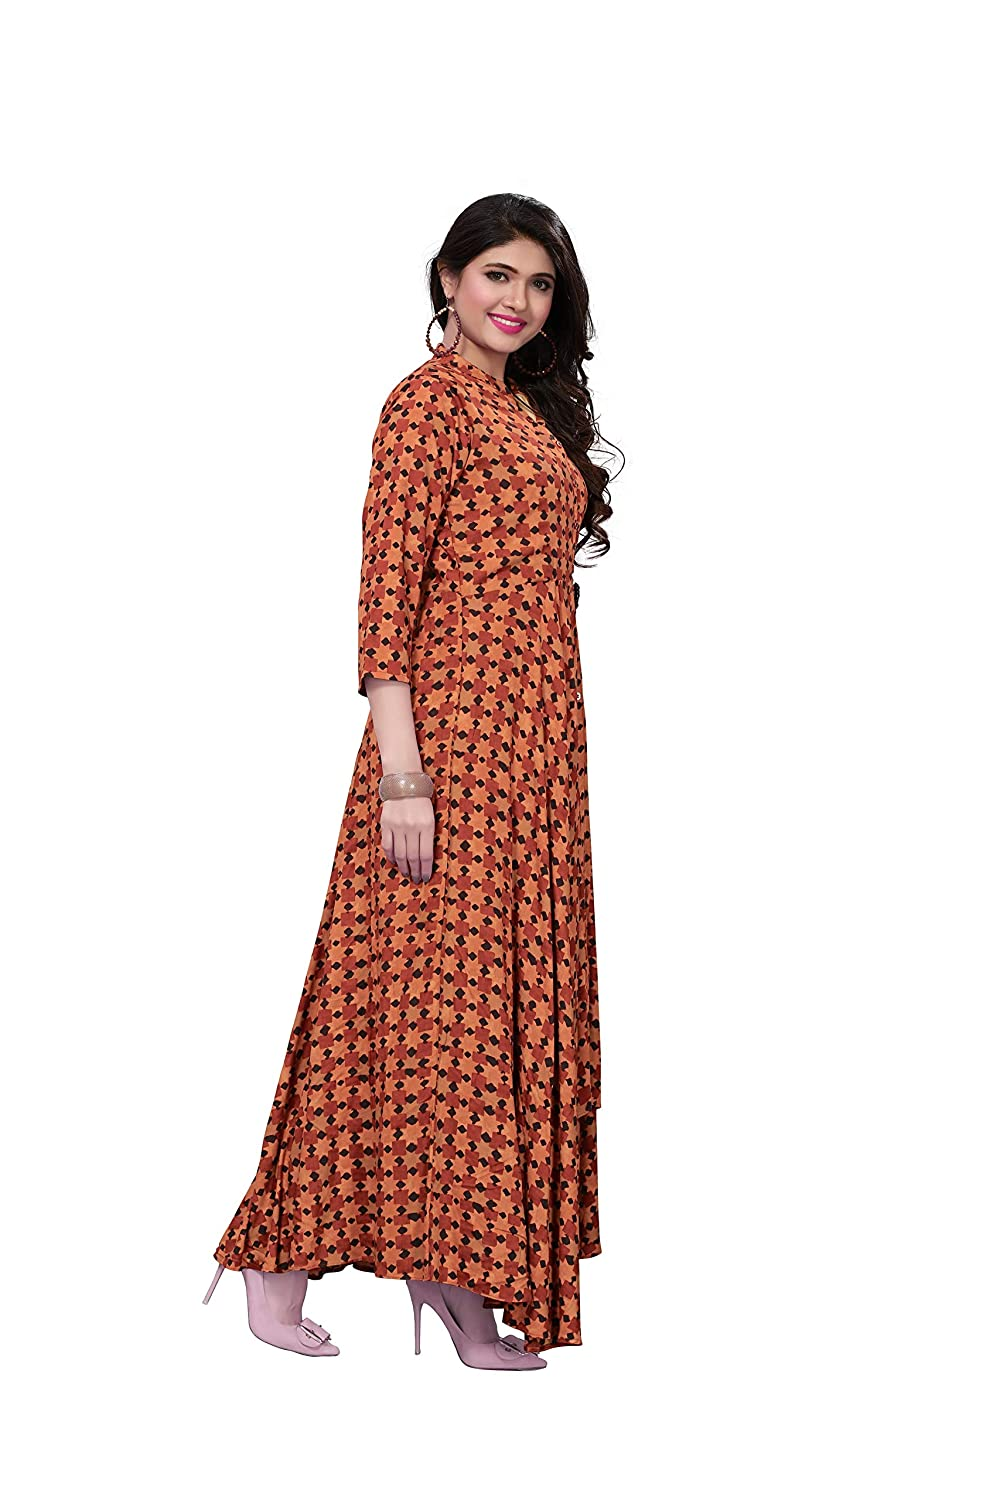 Royal Export Women s Brown Printed Rayon Gown  Amazon.in  Clothing    Accessories 0bd3c6e96